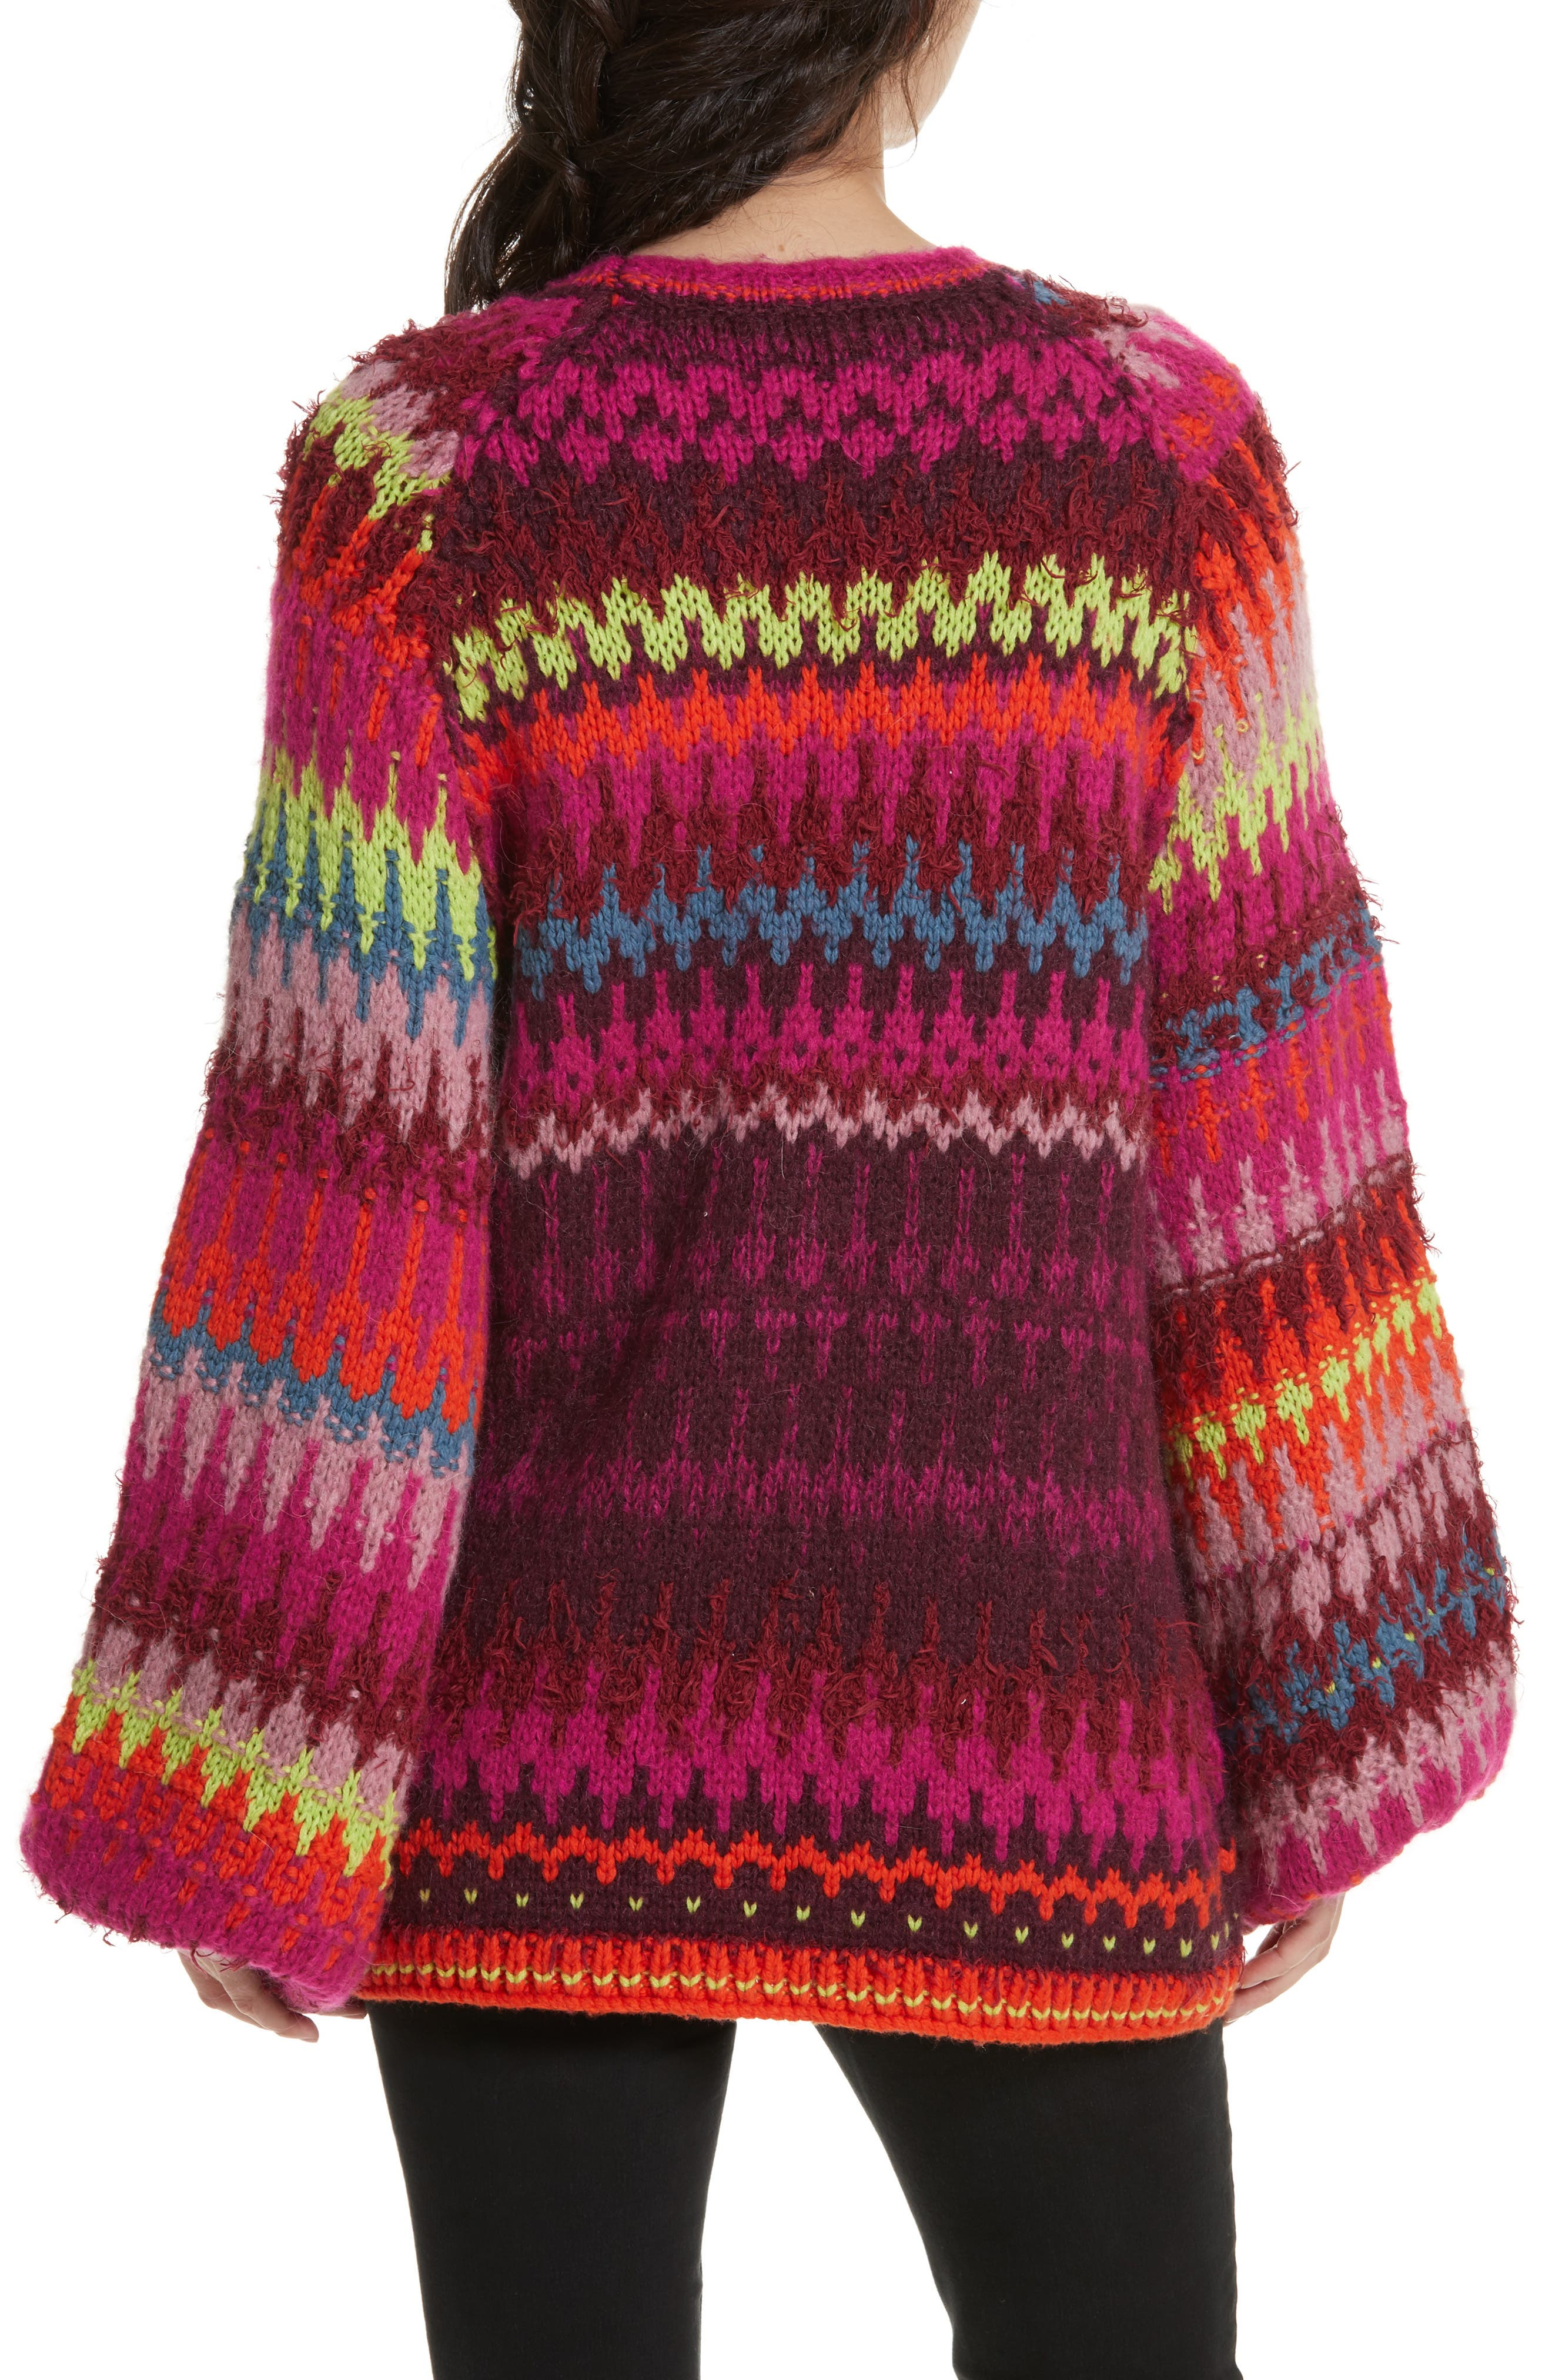 Castles in the Sky Sweater,                             Alternate thumbnail 2, color,                             Multi